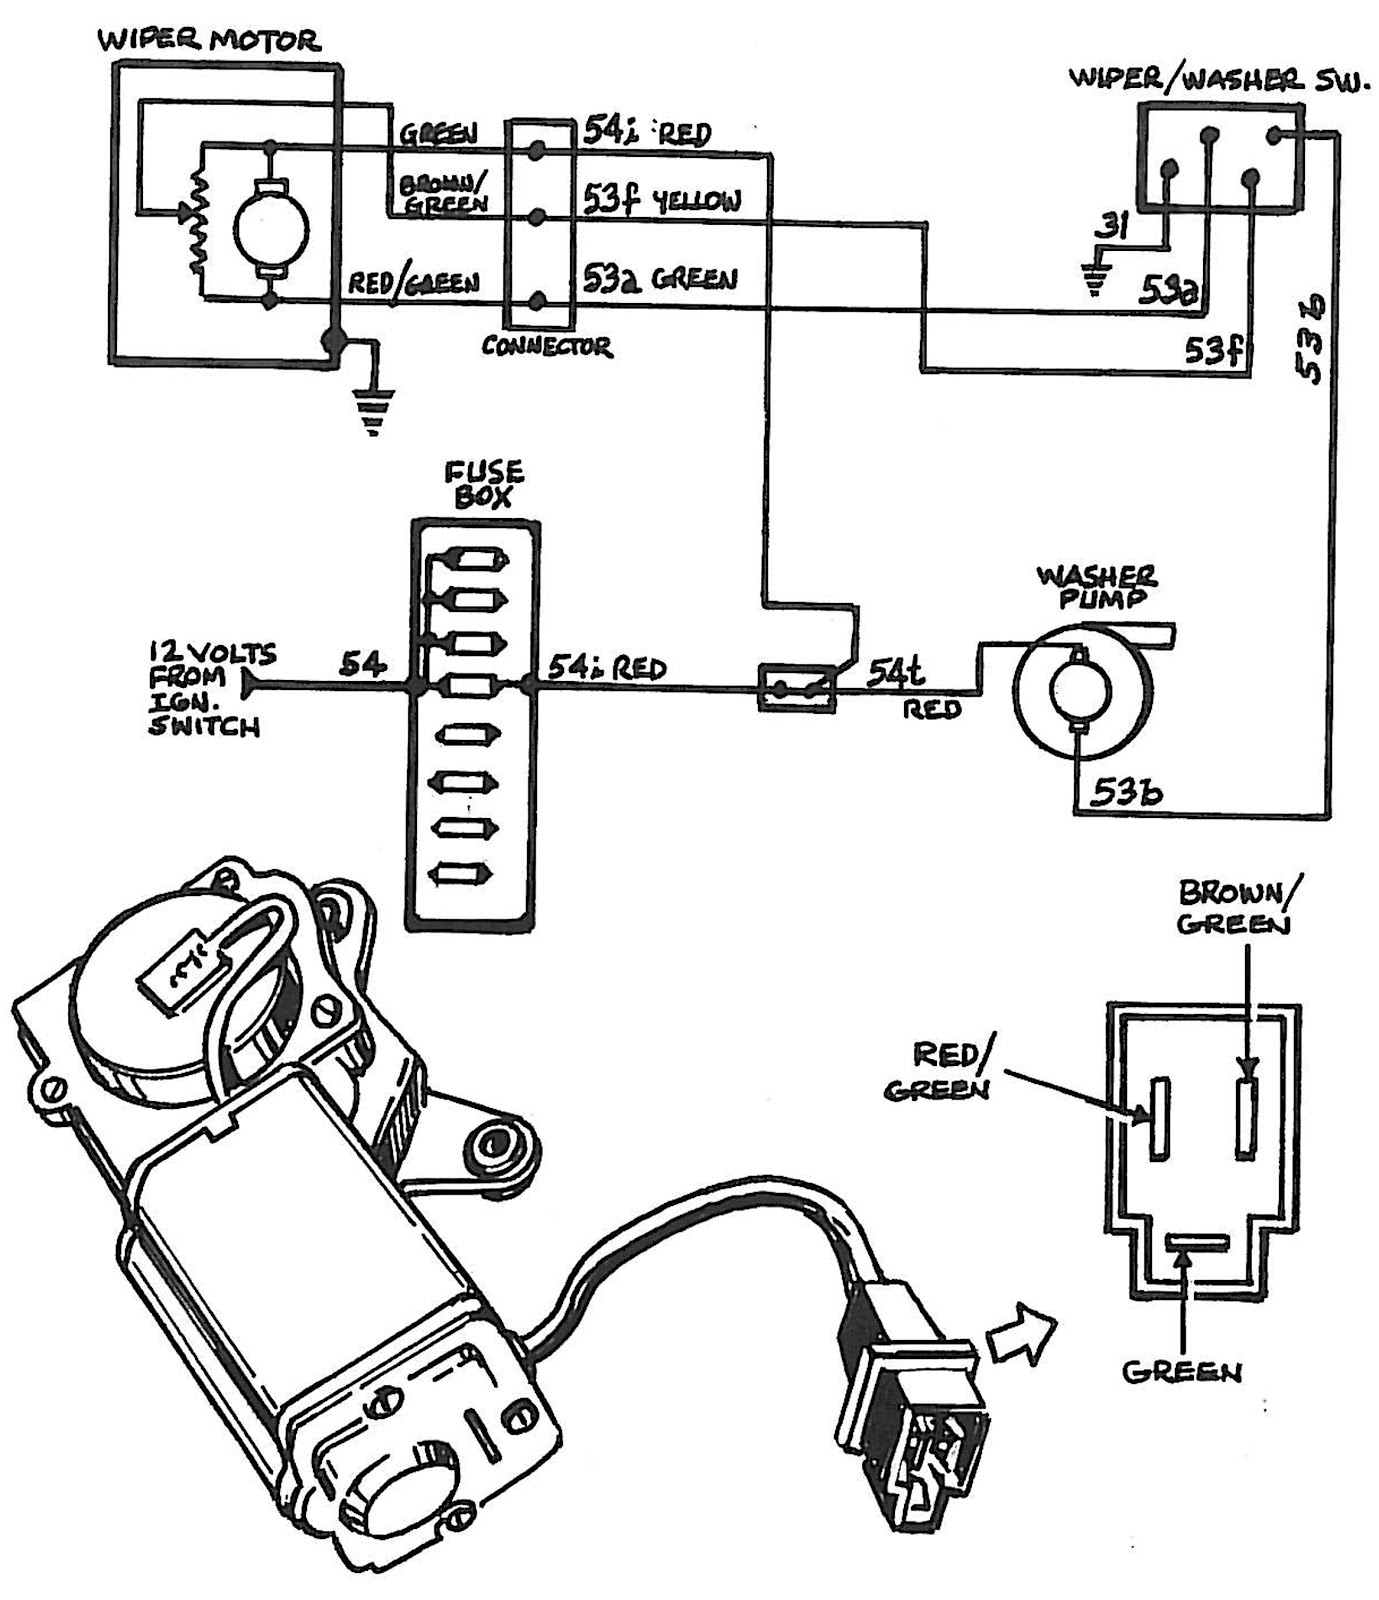 1931 Chevrolet Wiring Diagram together with Wiring Diagram For 1986 Chevy Truck furthermore 96 Camaro 3 8 Engine Diagram together with 64 Impala External Regulator 229583 likewise Exploded View 2008 Gmc Sierra 1500 Manual Transmission. on chevrolet truck wiring diagrams get free image about